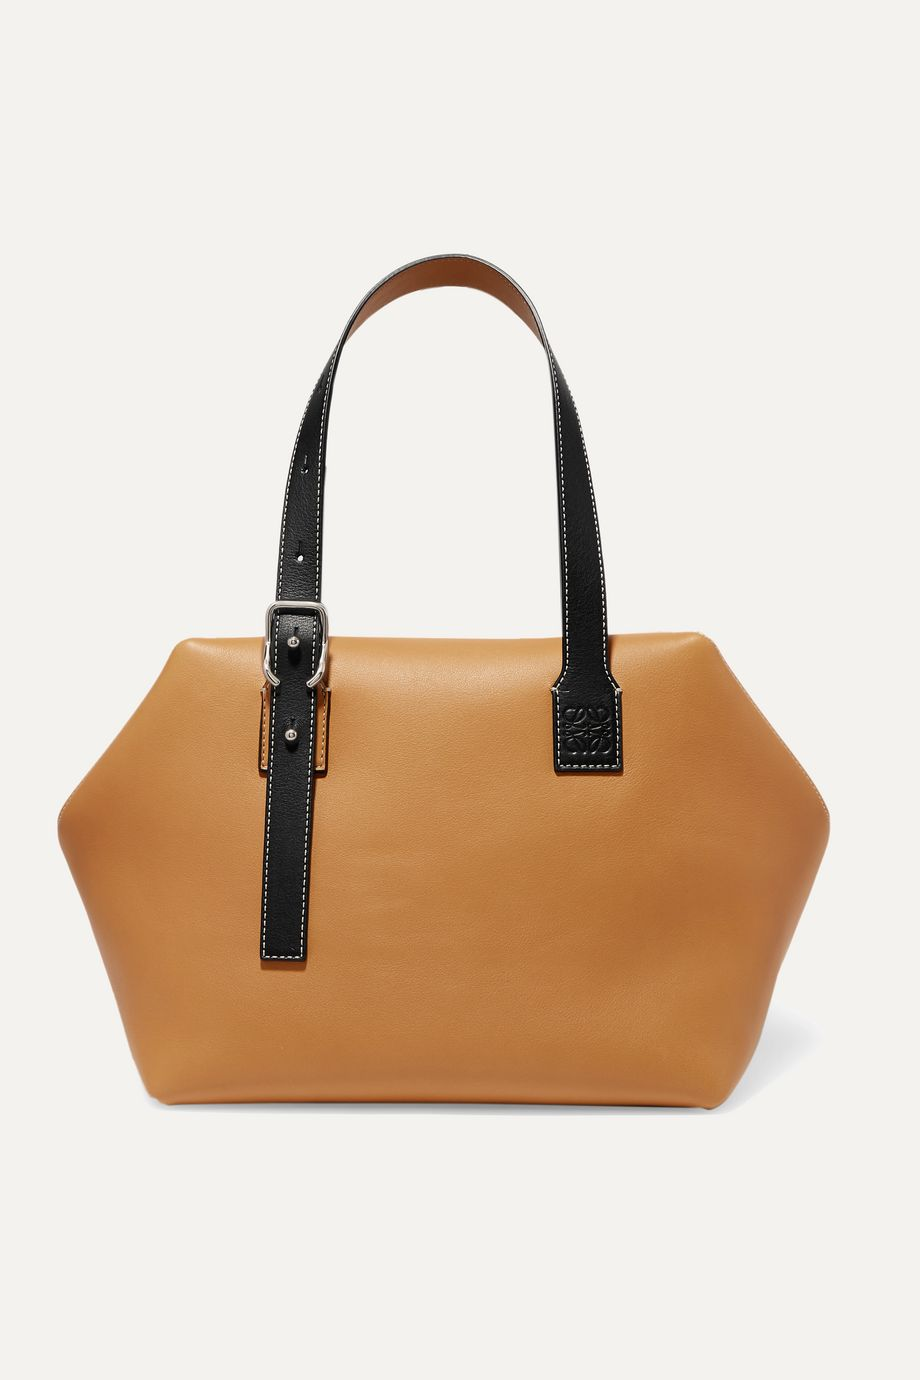 Loewe Cube two-tone leather tote